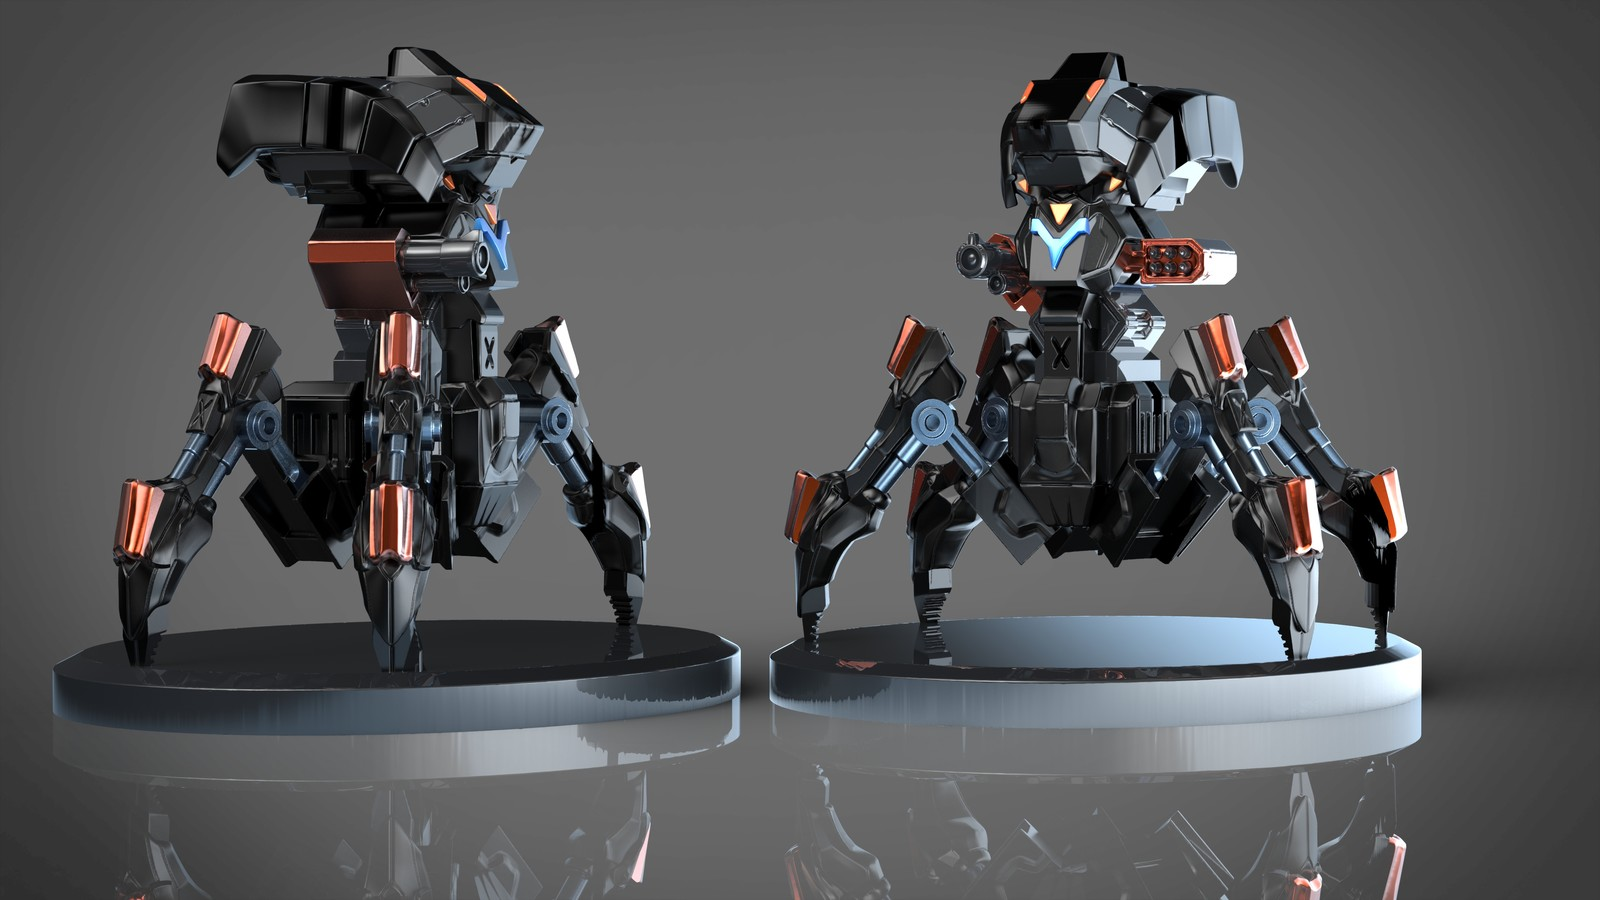 Mech unit for upcoming wargame